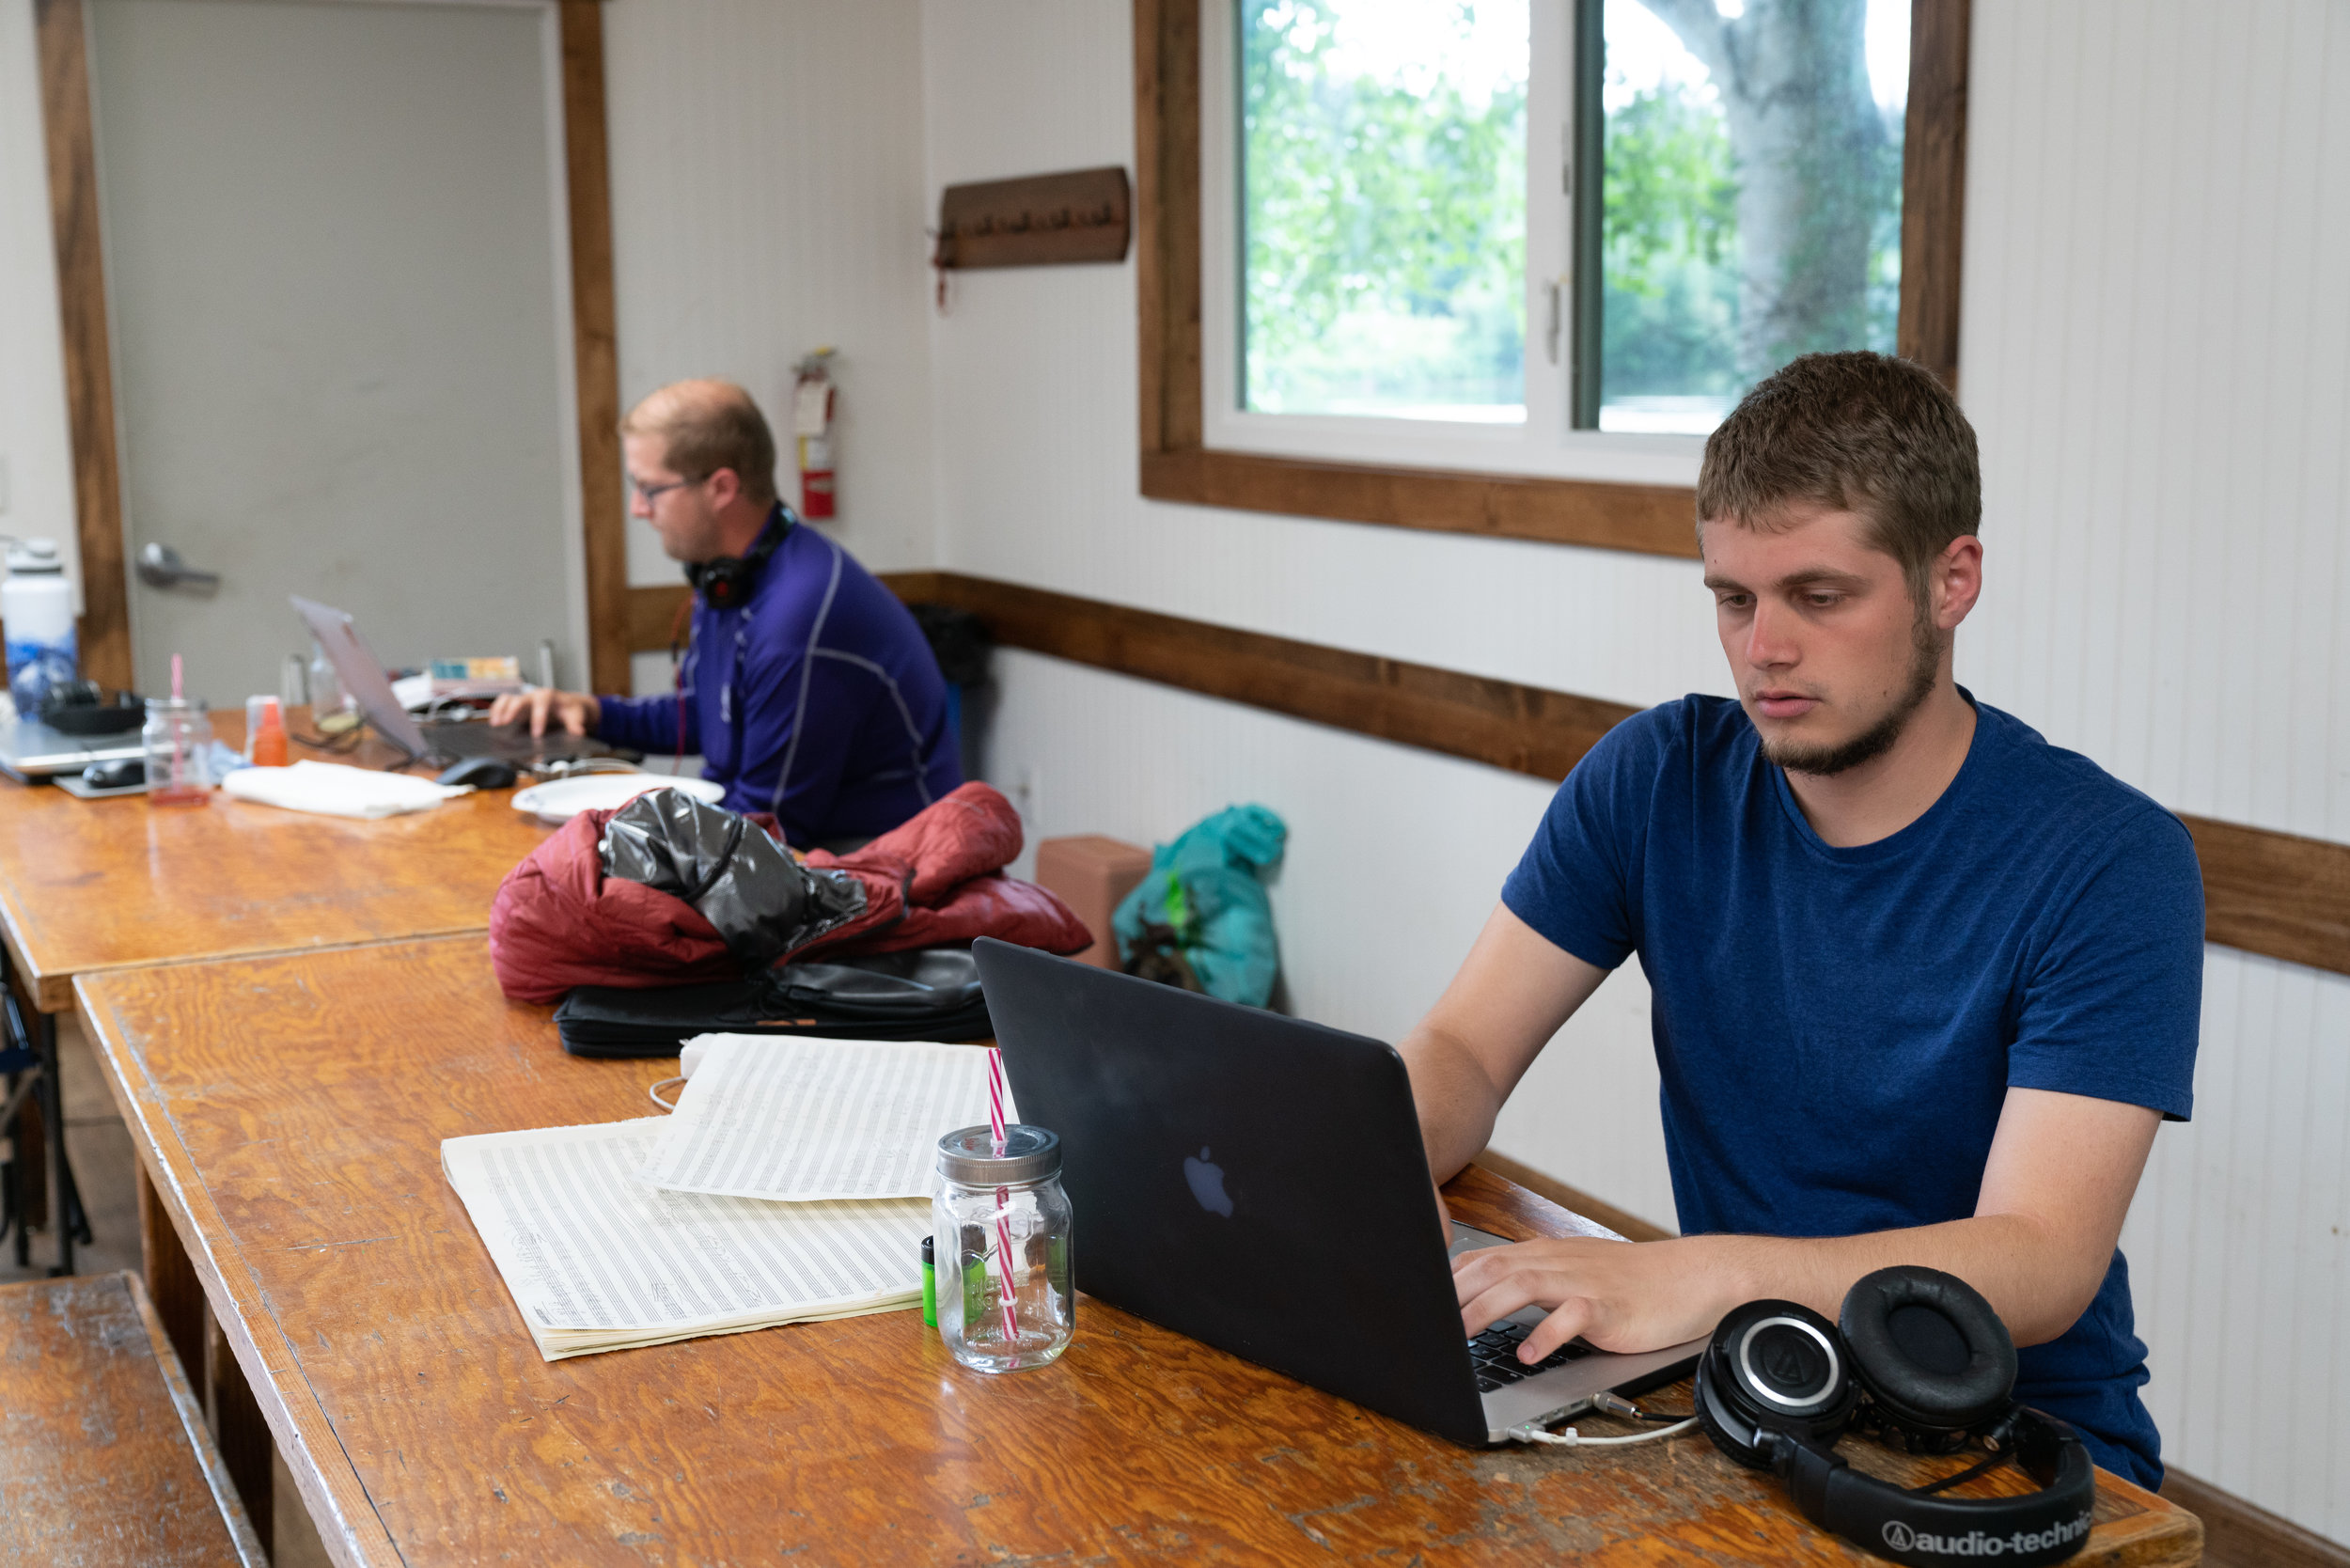 2018 participants working on their pieces in the mess hall at Twin Bears.